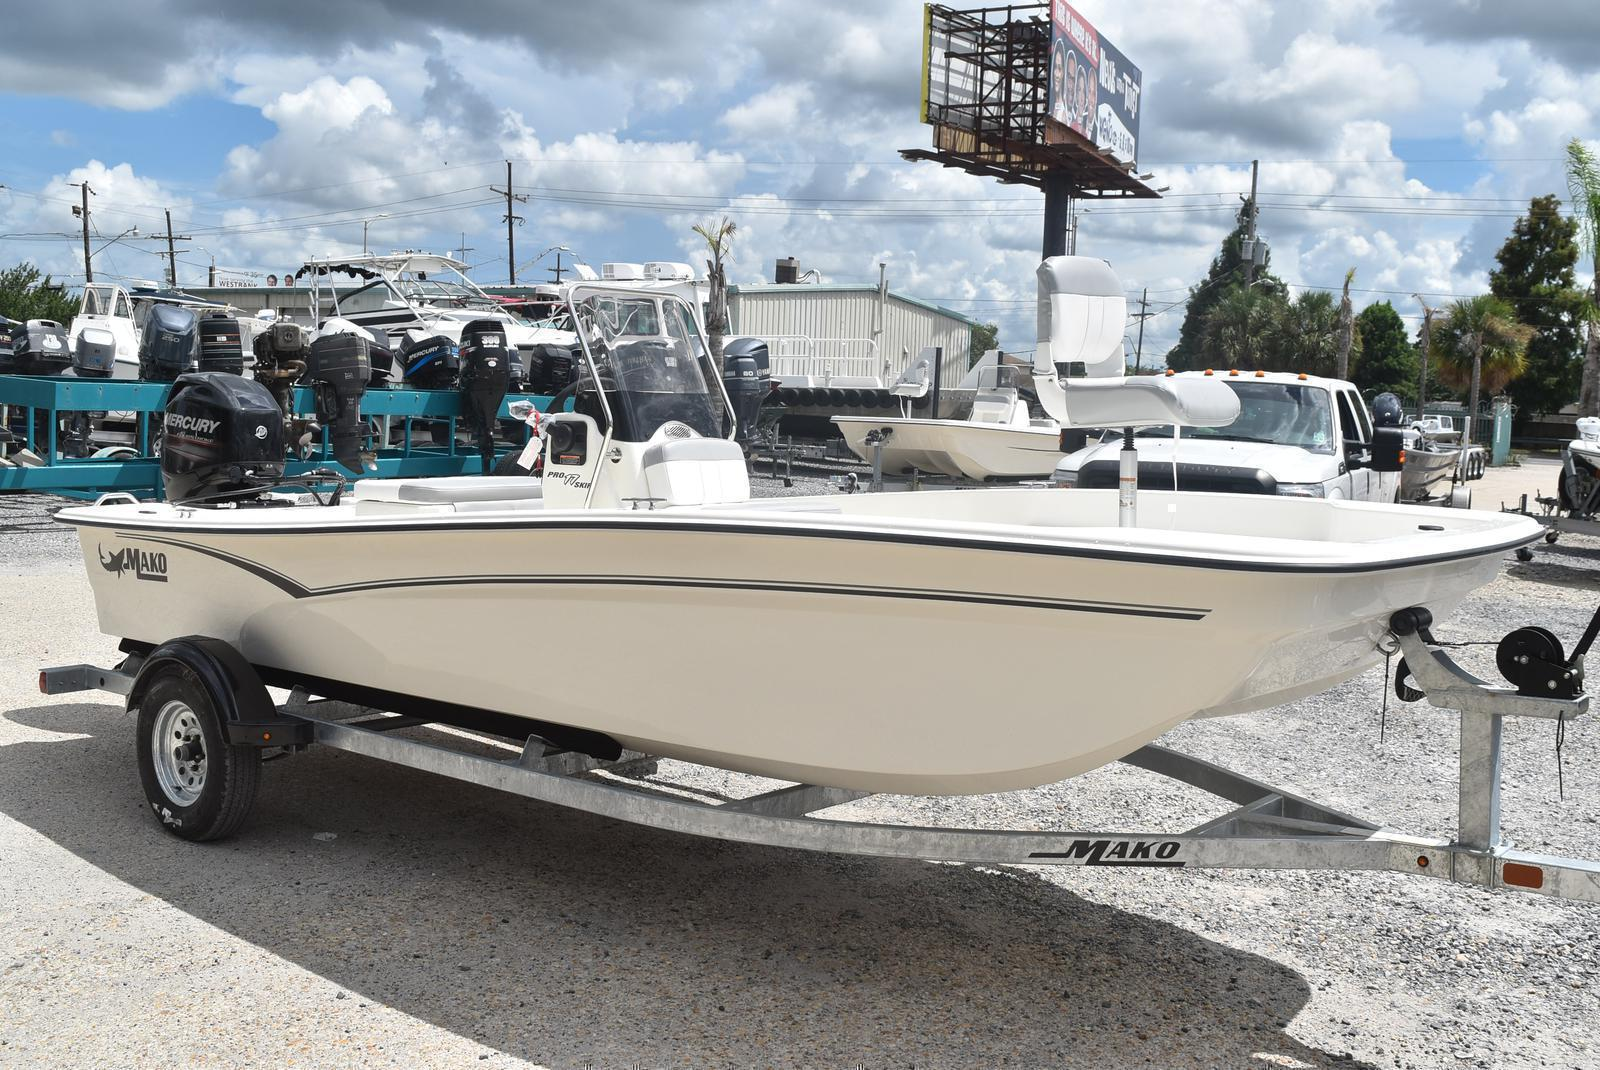 2020 Mako boat for sale, model of the boat is Pro Skiff 17, 75 ELPT & Image # 659 of 702